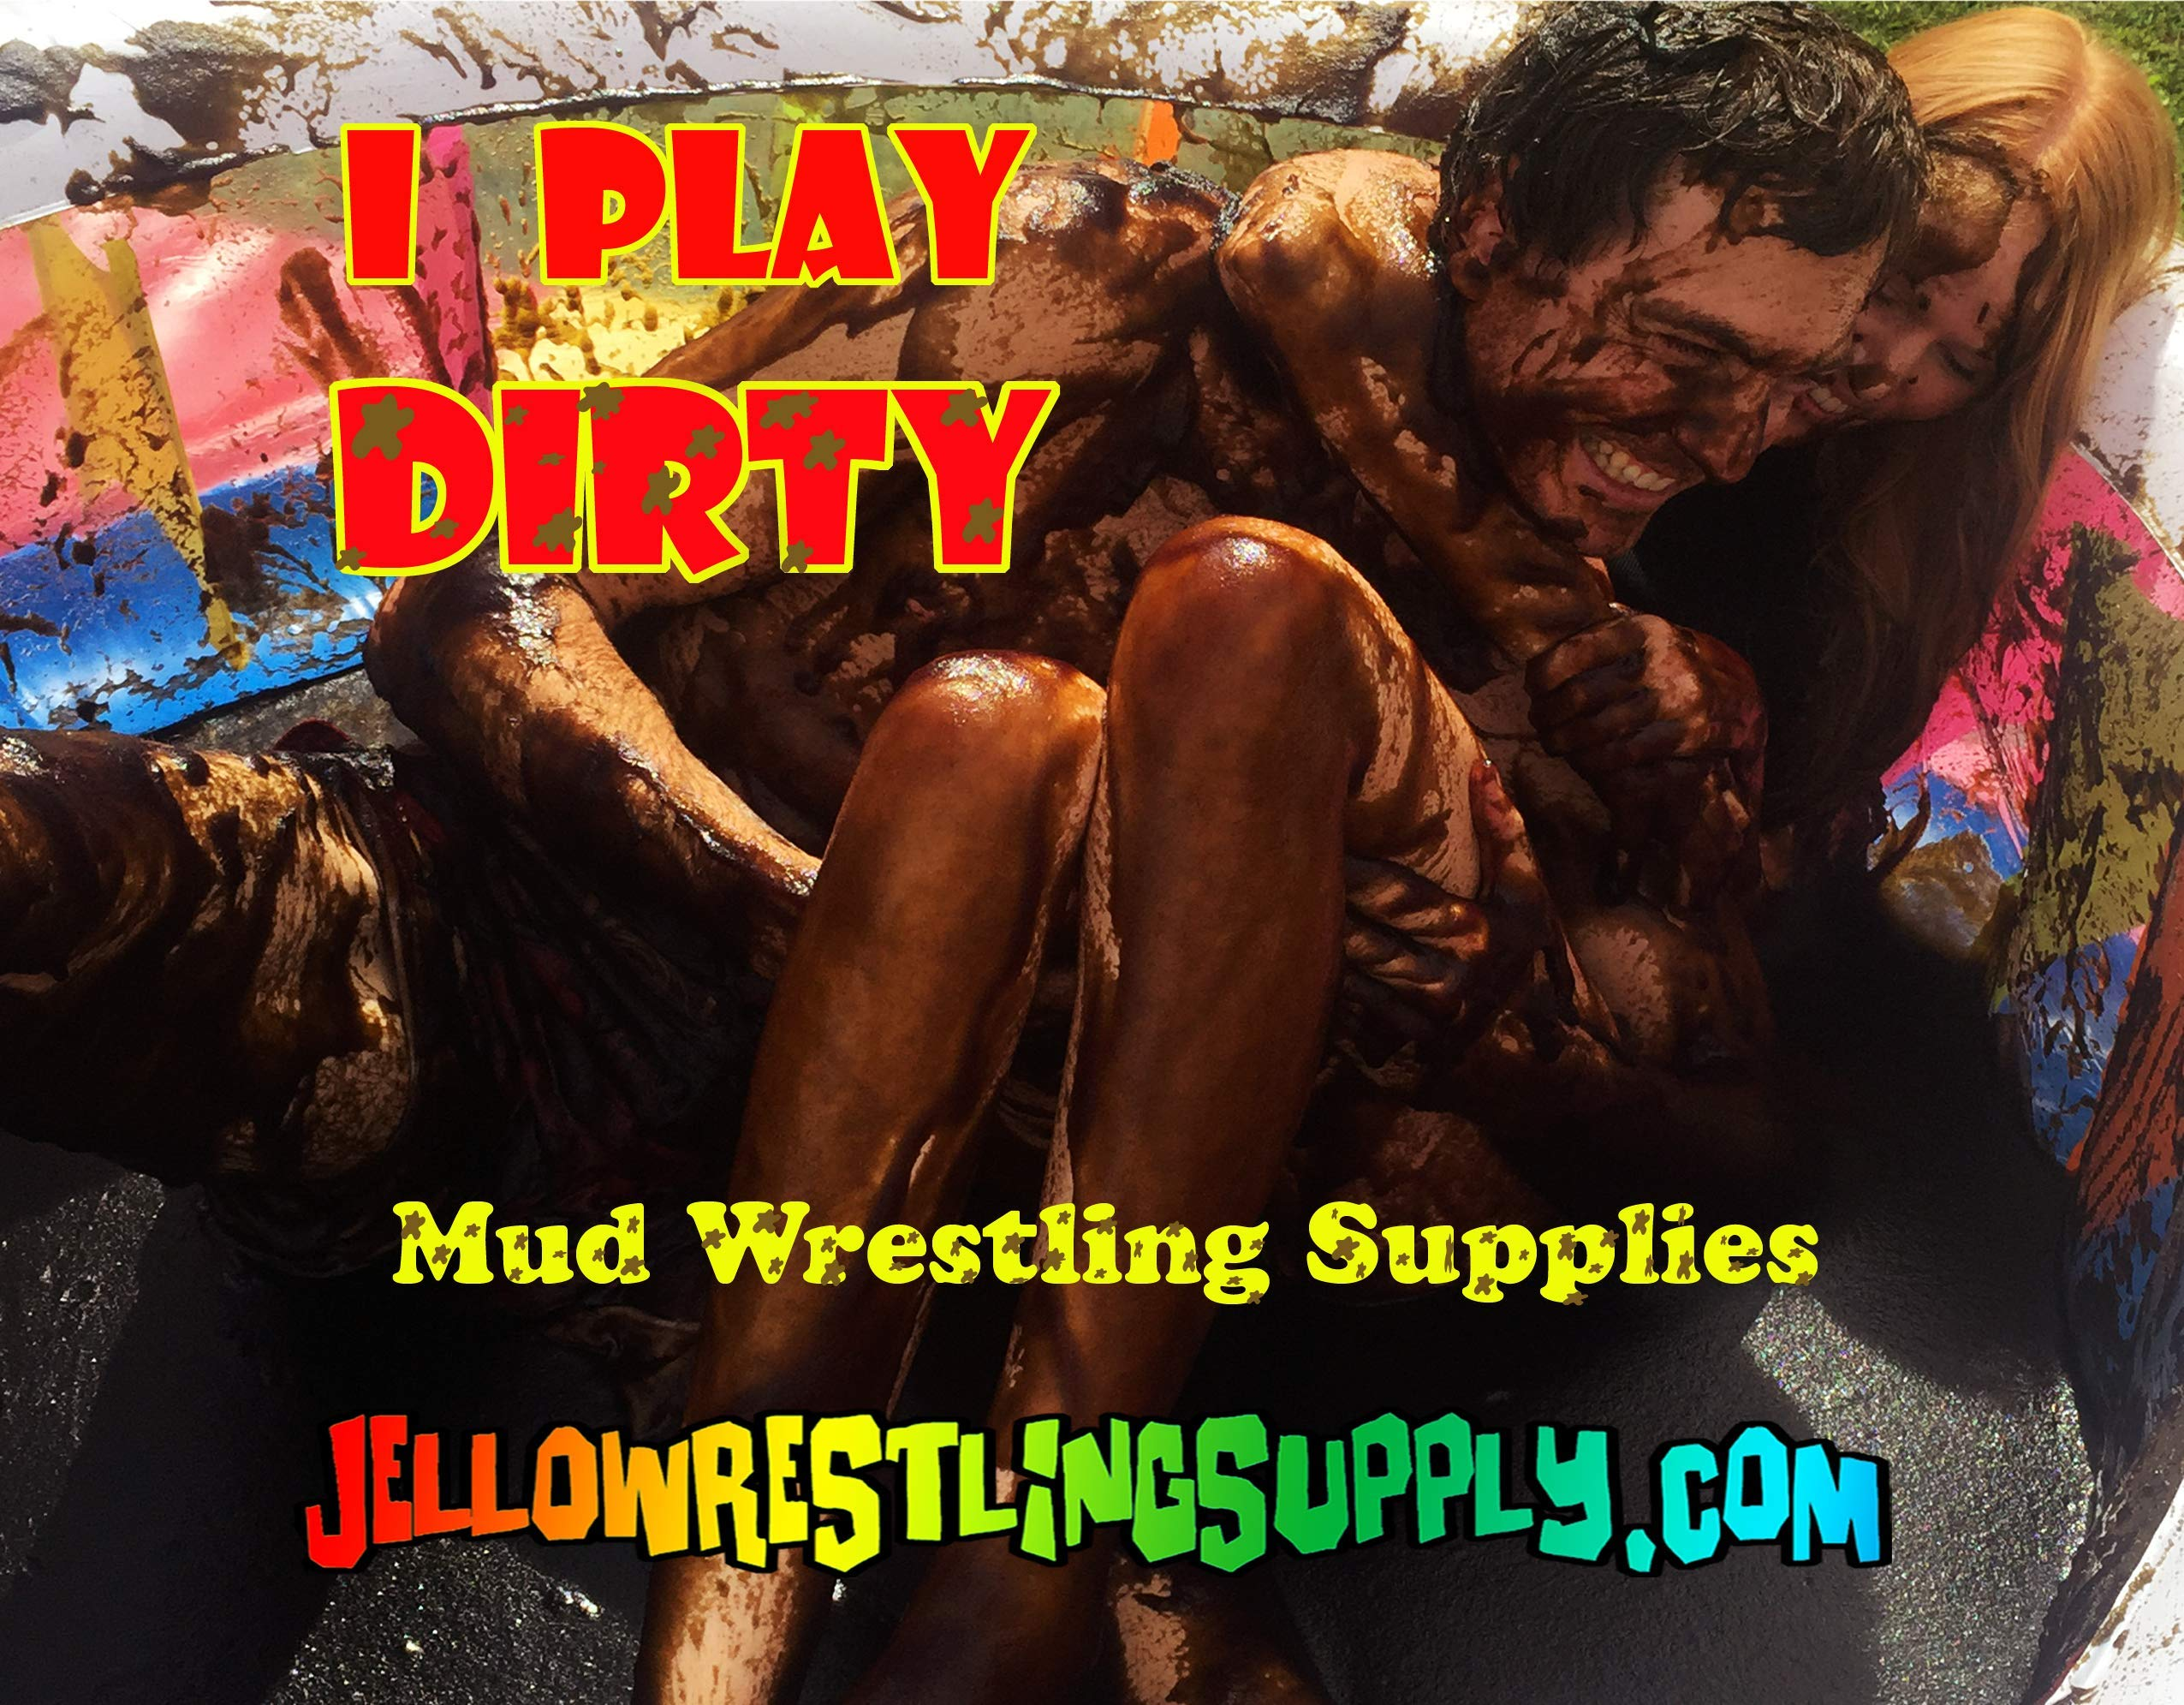 INSTANT MUD for Wrestling, Mud Pies, Balloons & Bombs JUST ADD WATER Bulk Mud powder makes 60 GALLONS of fake mud. Safe, clean mud run obstacle pits, pitch burst, Slime sludge messy kit oil tar by JelloWrestlingSupply.com (Image #3)